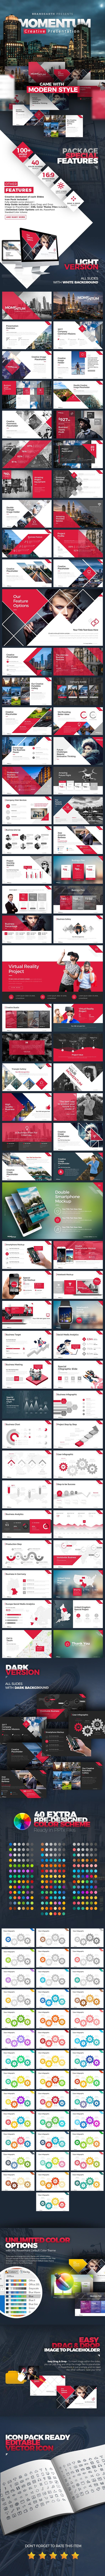 Momentum Creative Presentation - Creative #PowerPoint #Templates Download here: https://graphicriver.net/item/momentum-creative-presentation/19510627?ref=alena994